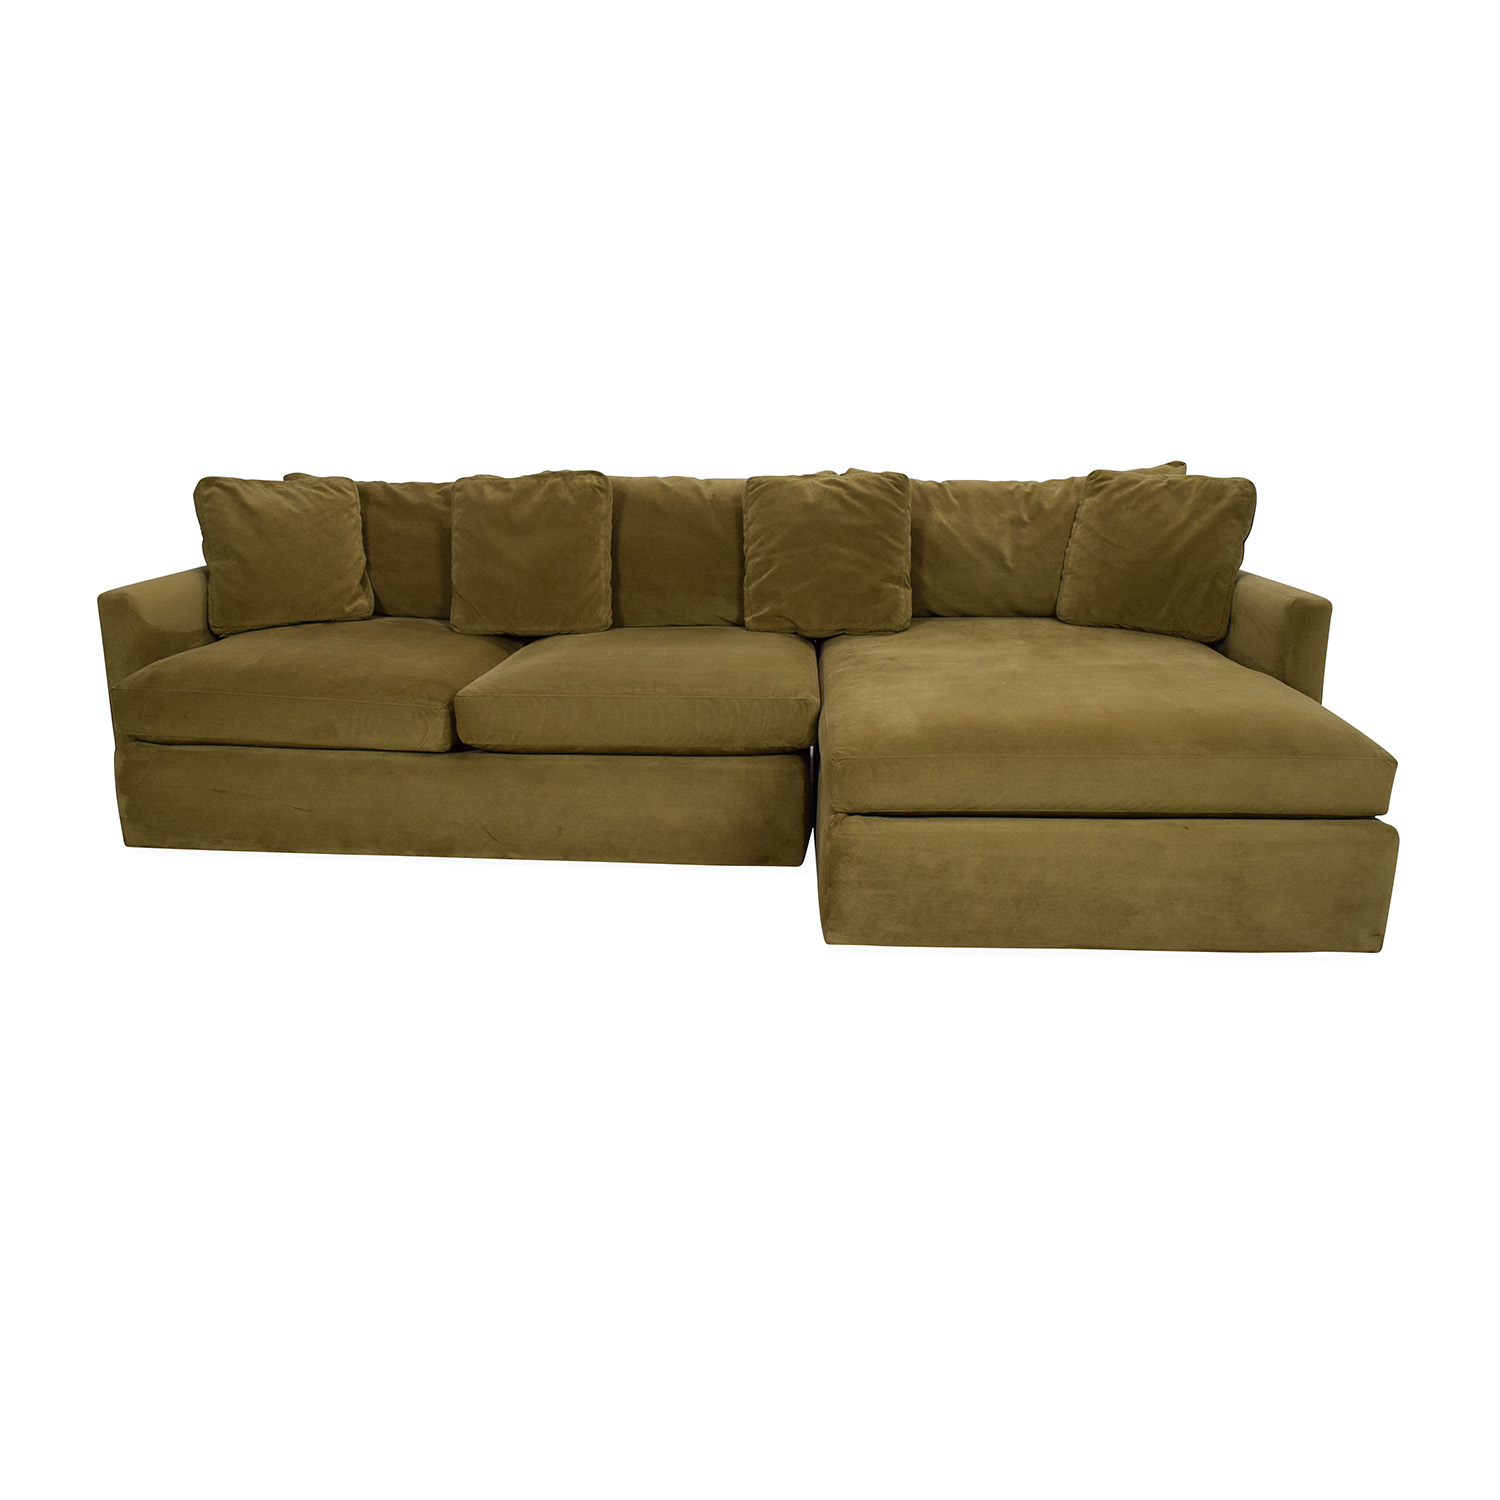 does cloth couch oversized u pulaski home costco white rugs at full size chaise extra craigslist comfortable shaped couches sectional sectionals for ottoman event modular under of with leather get sofas recliner area large bed set emerald deliver when canada sleeper fabric sofa furniture sale cheap